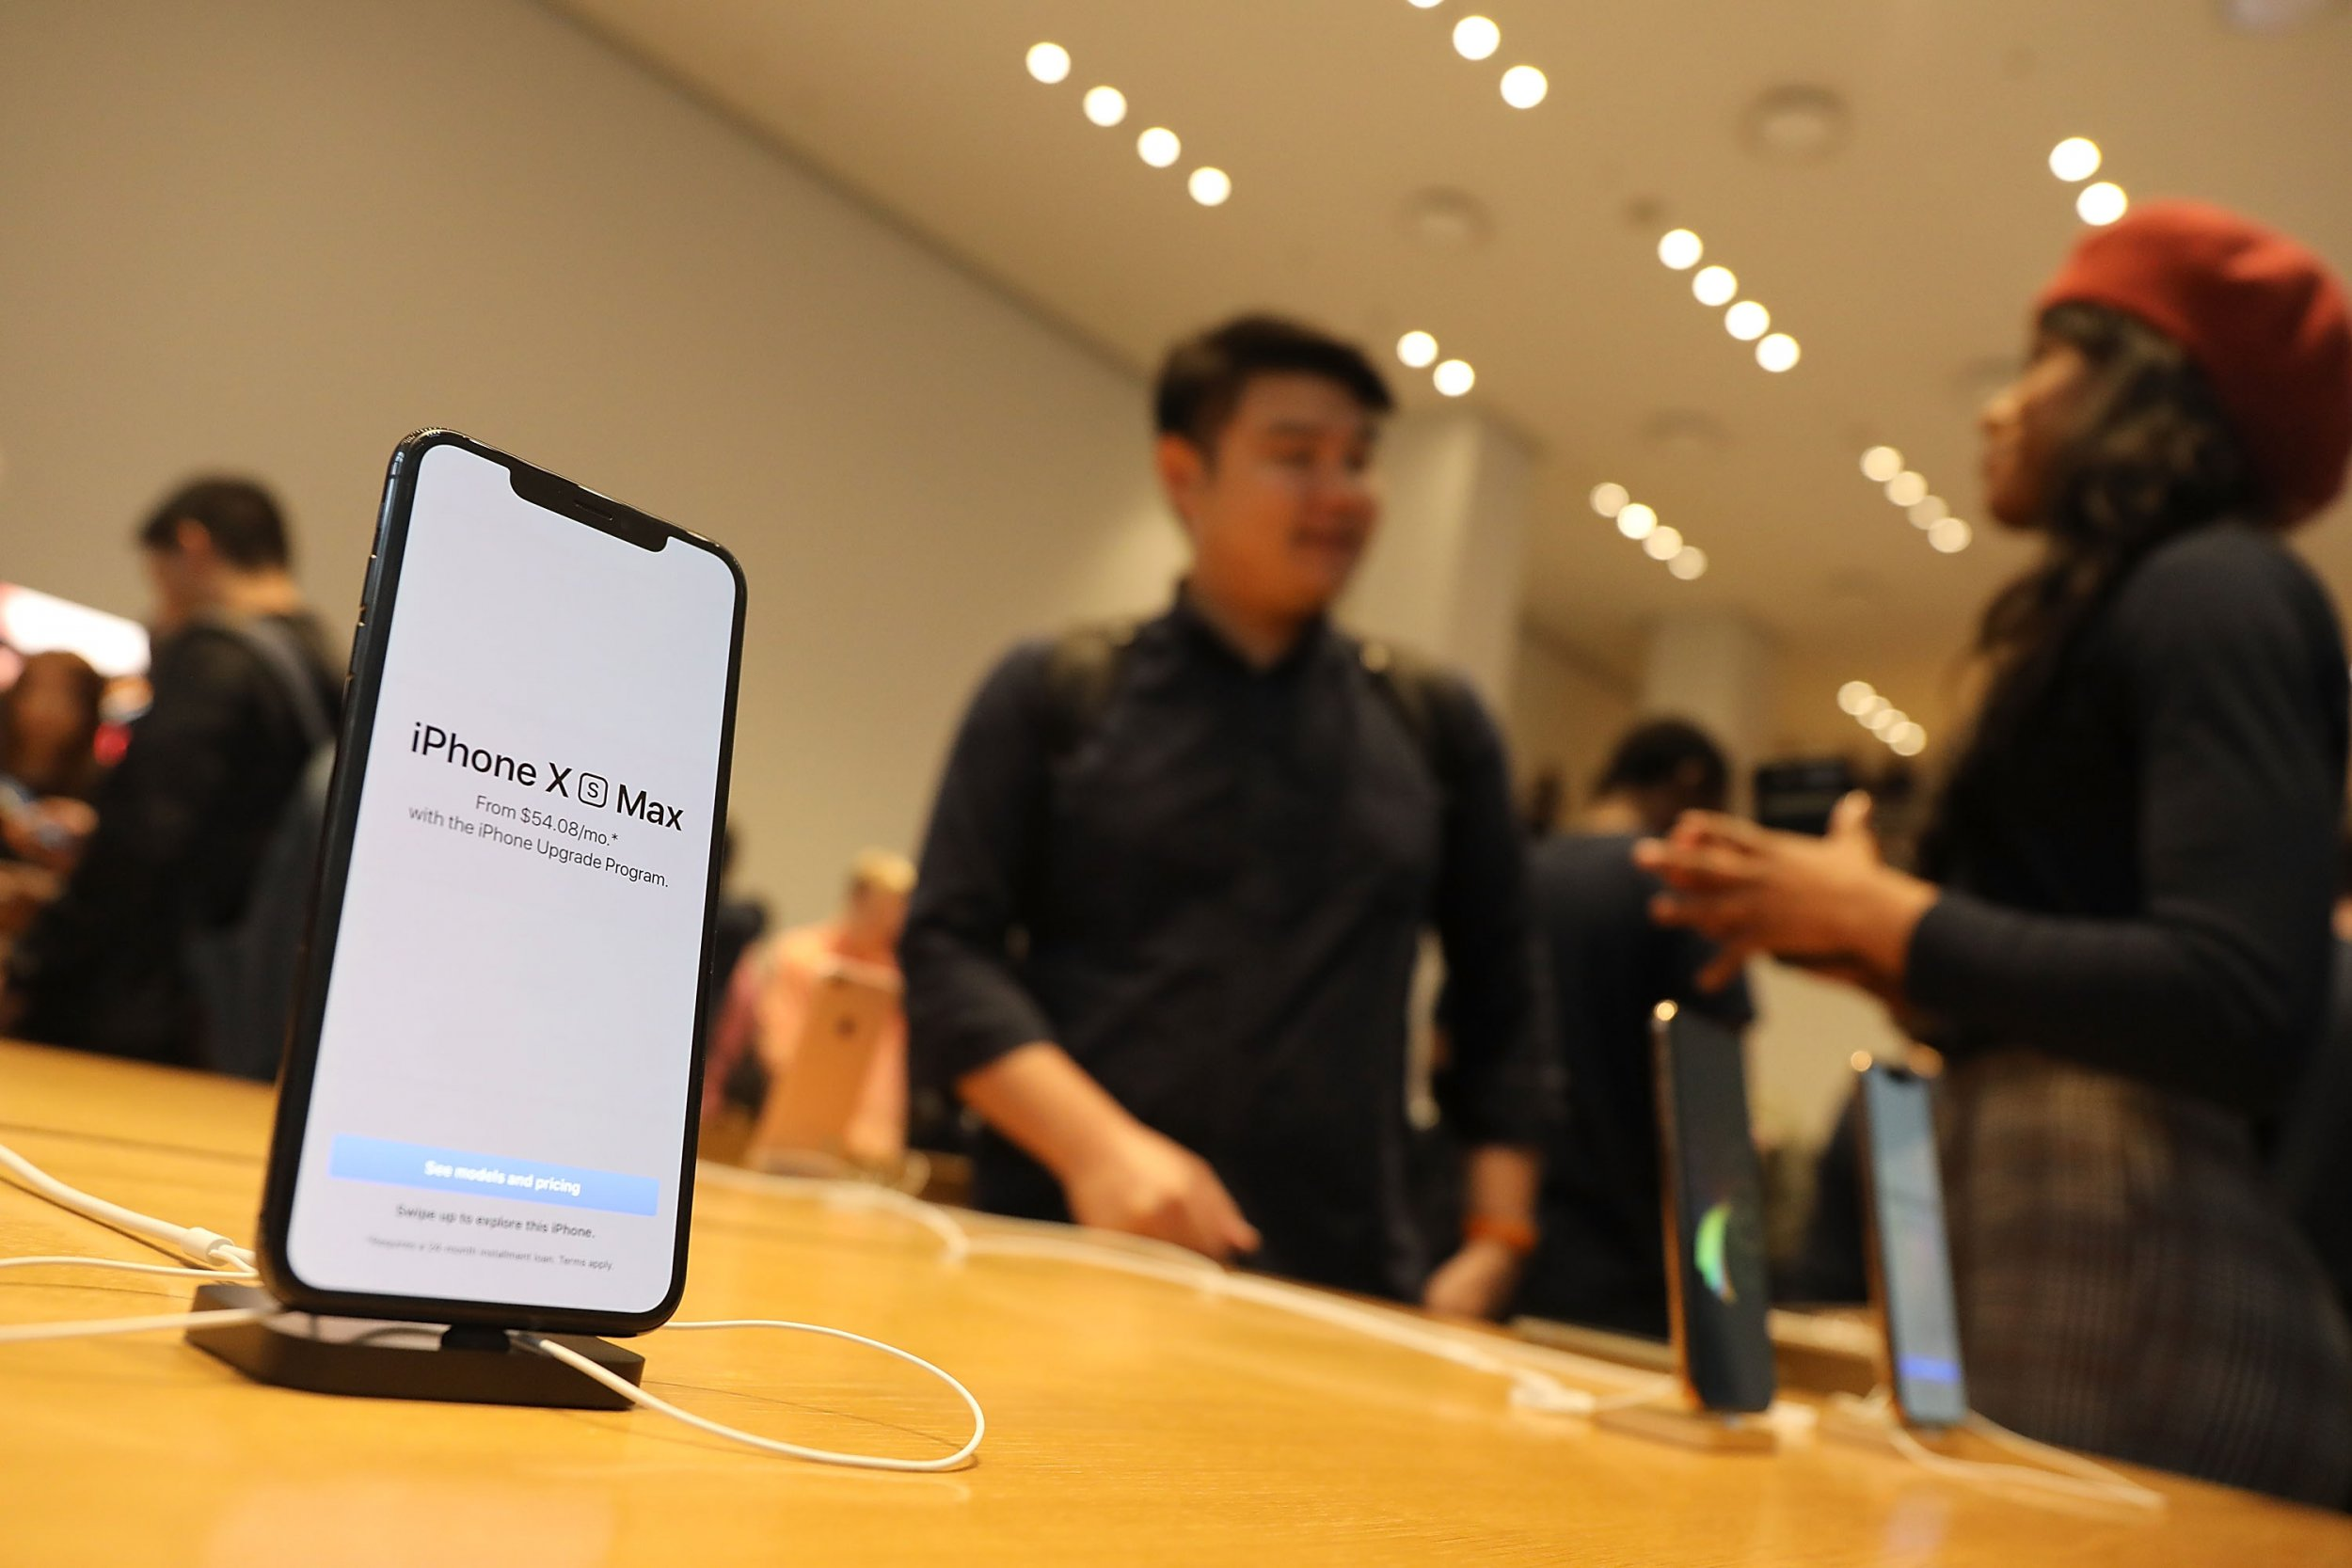 Snapchat iPhone XS Max Users Experiencing Issues, Camera Glitches